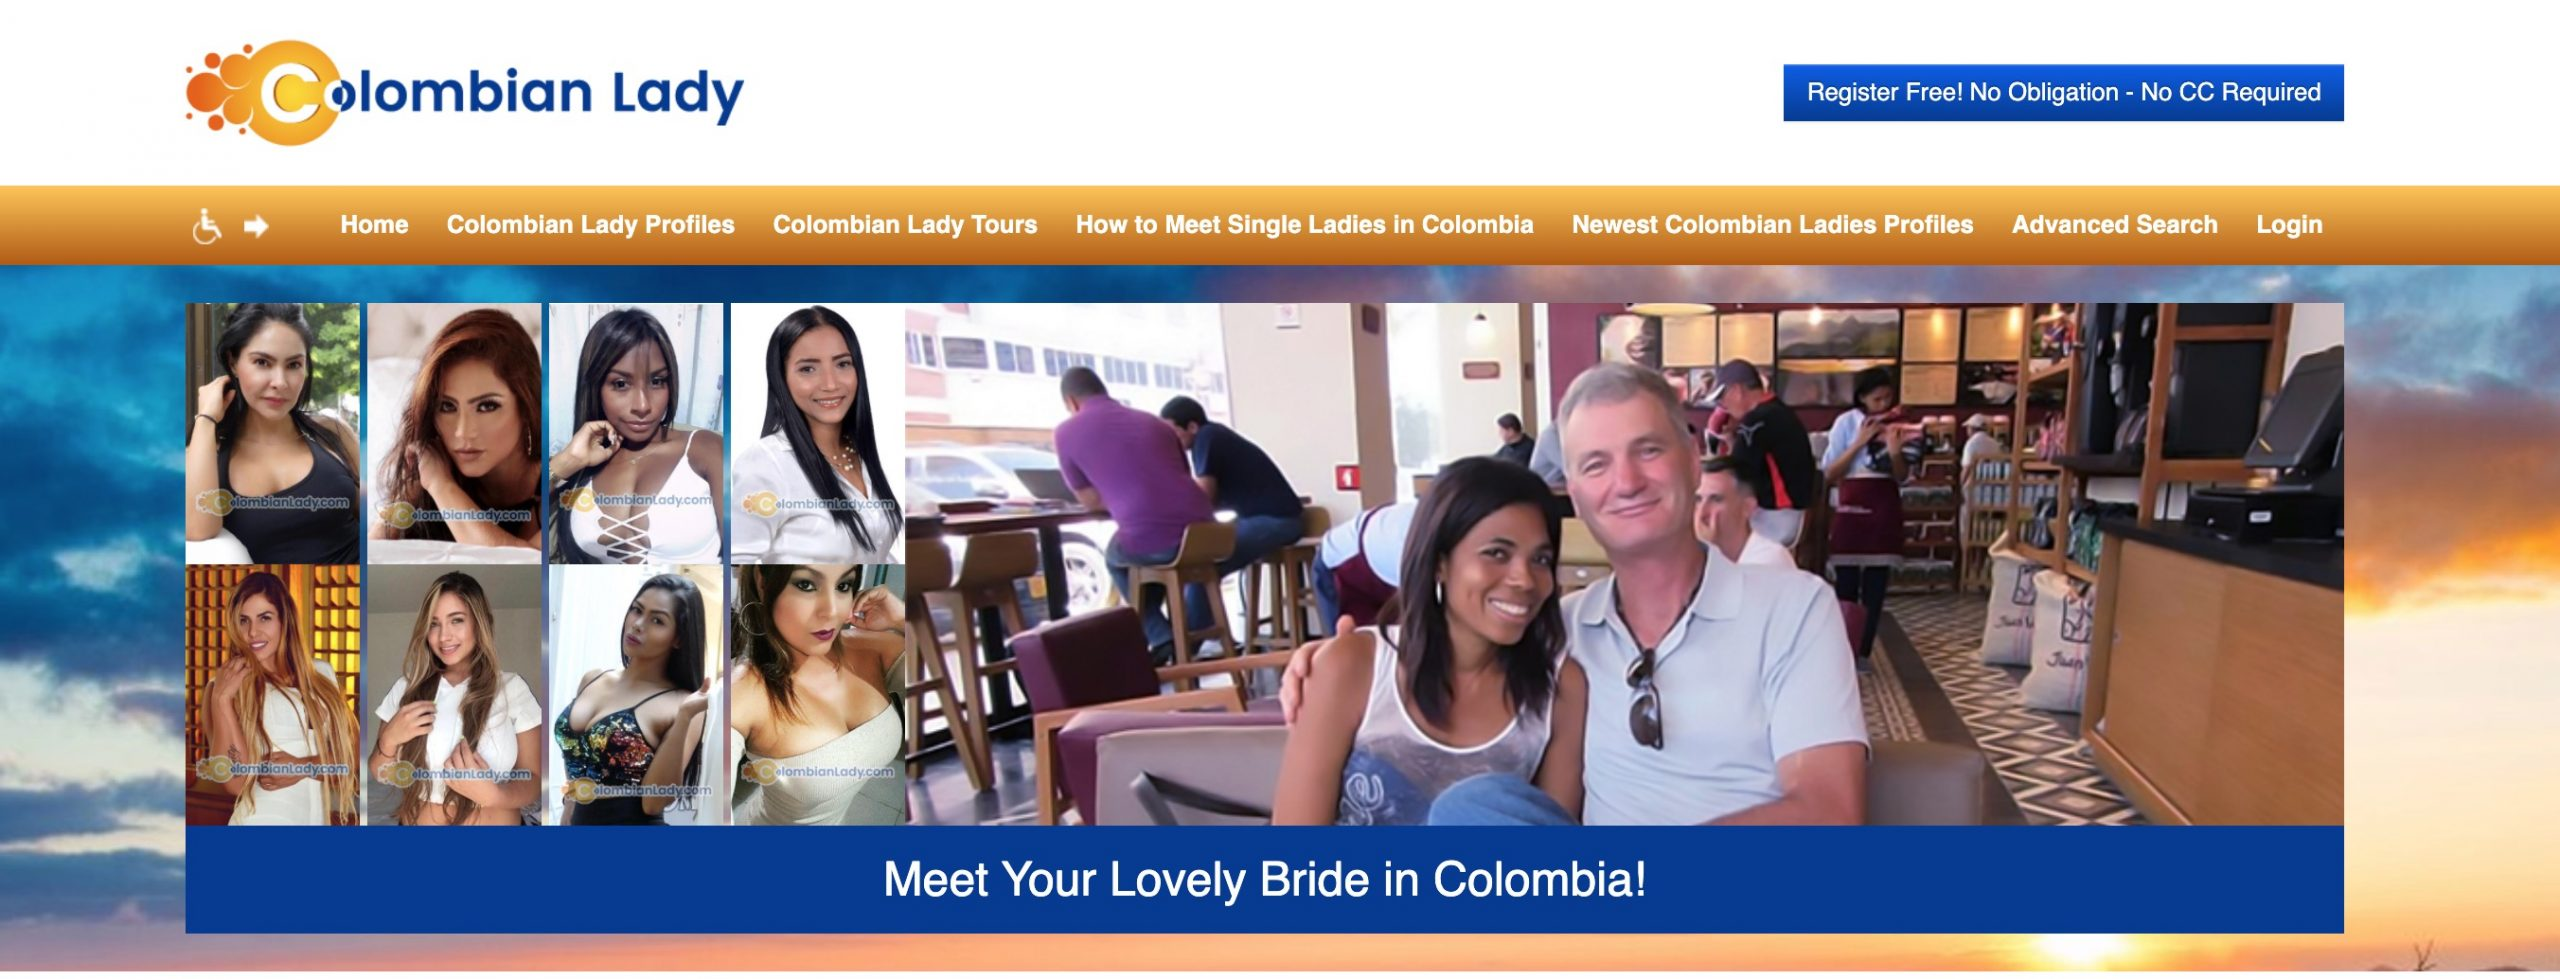 ColombianLady main page